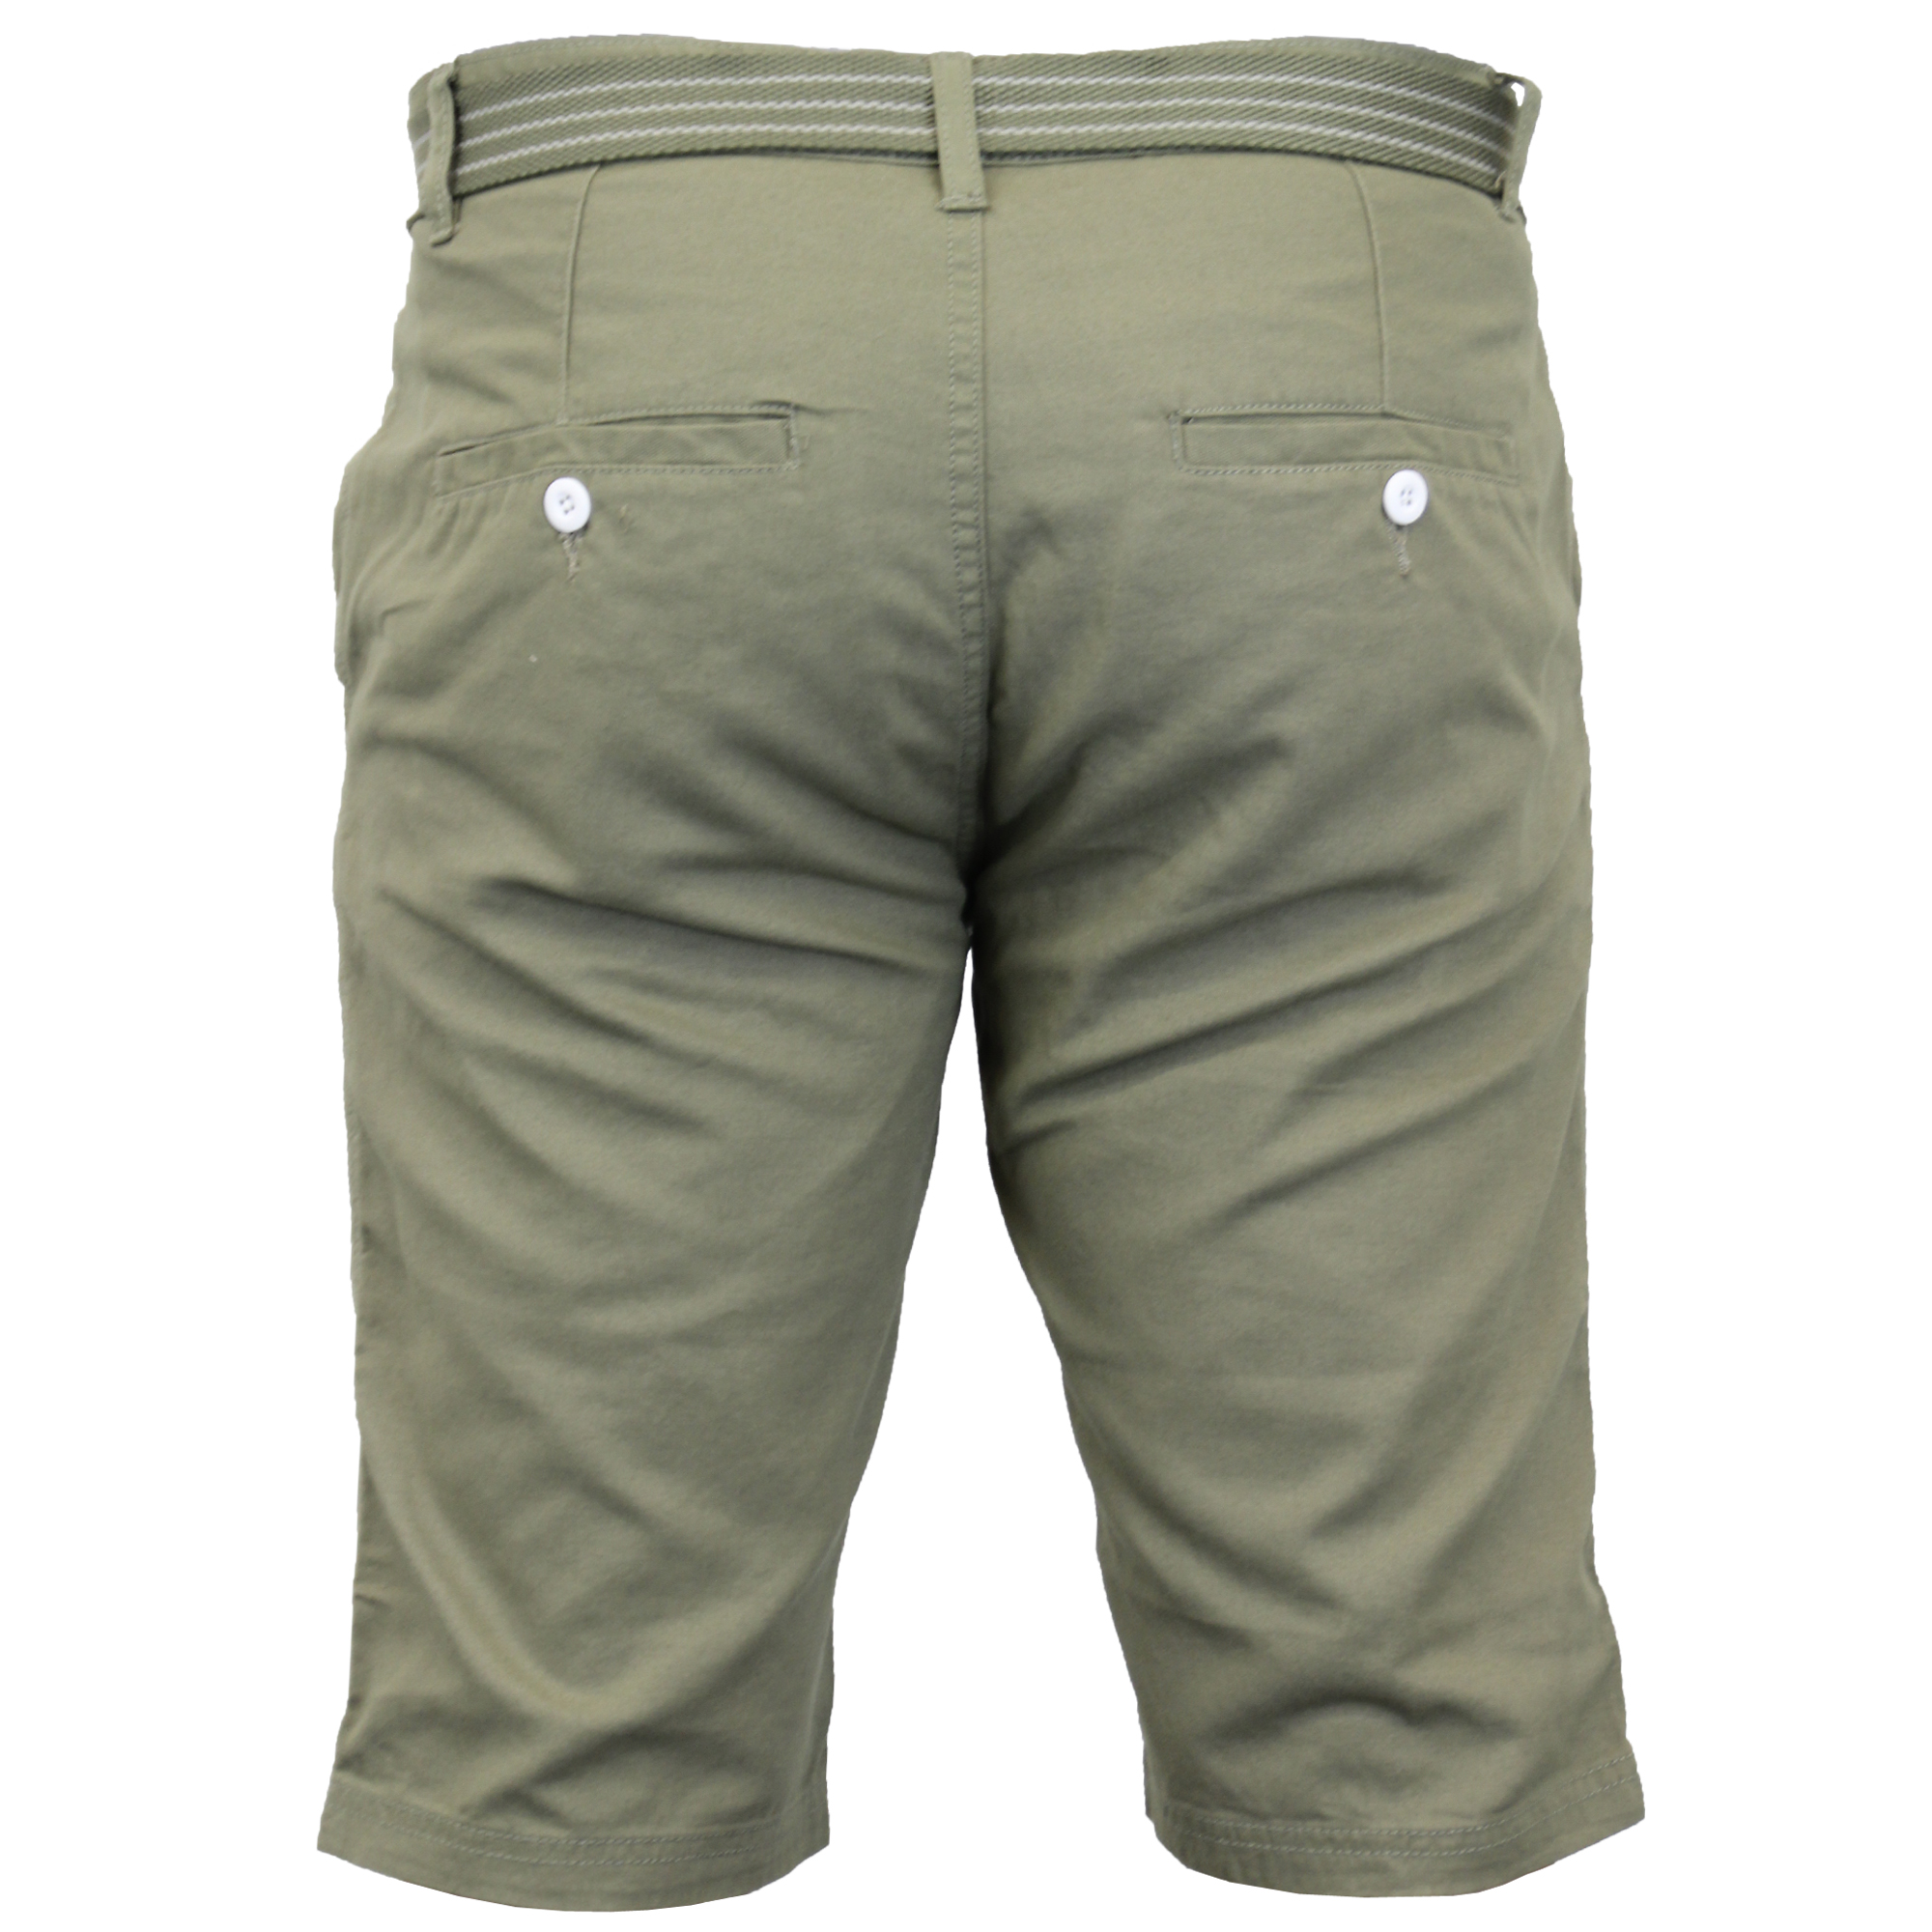 Mens-Chino-Shorts-Threadbare-Cotton-Oxford-Belted-Loyalty-amp-Faith-Seven-Series thumbnail 22